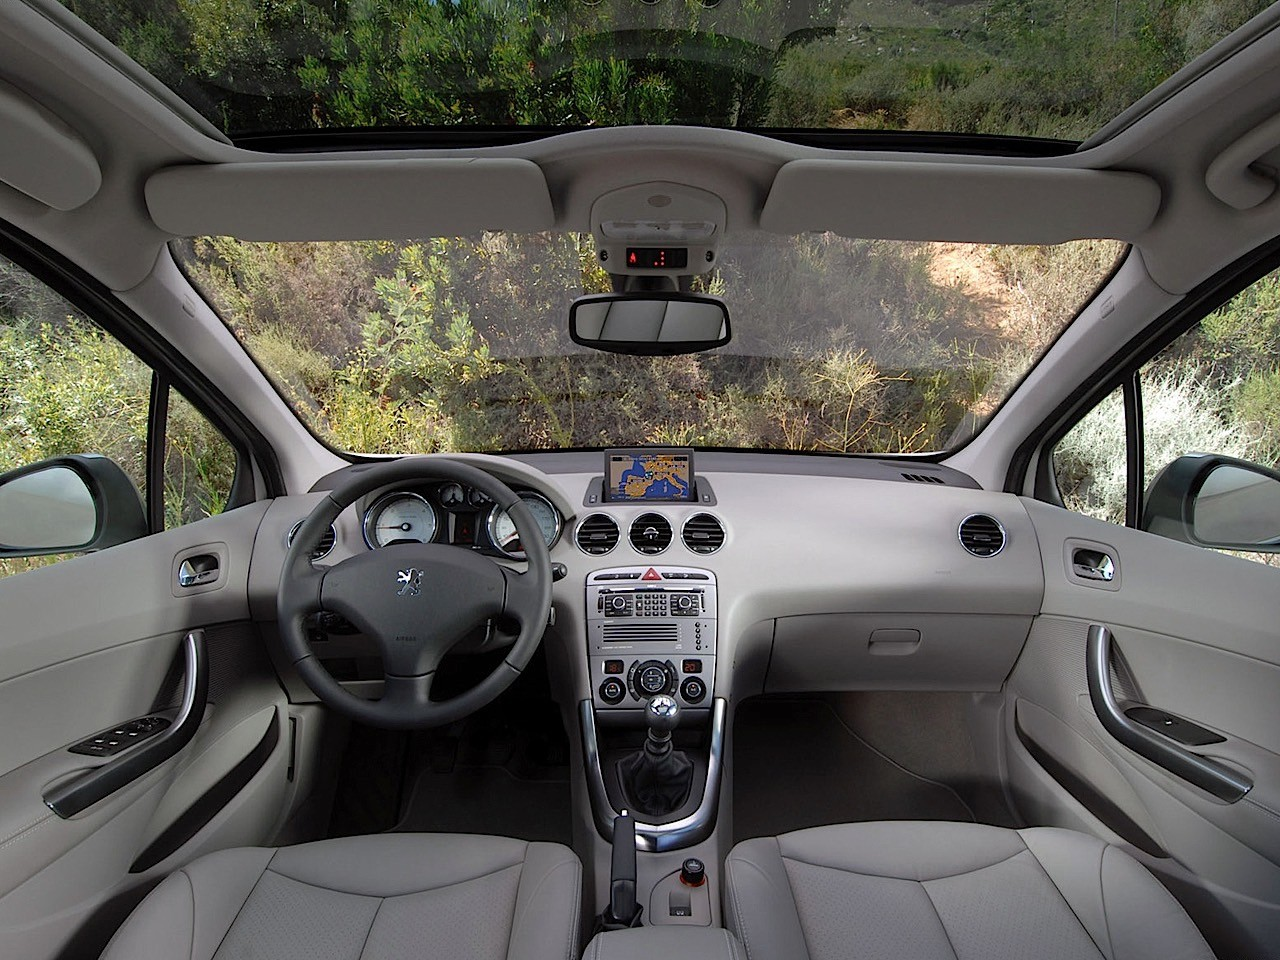 Pics for peugeot 308 2008 interior for Peugeot 2008 interieur